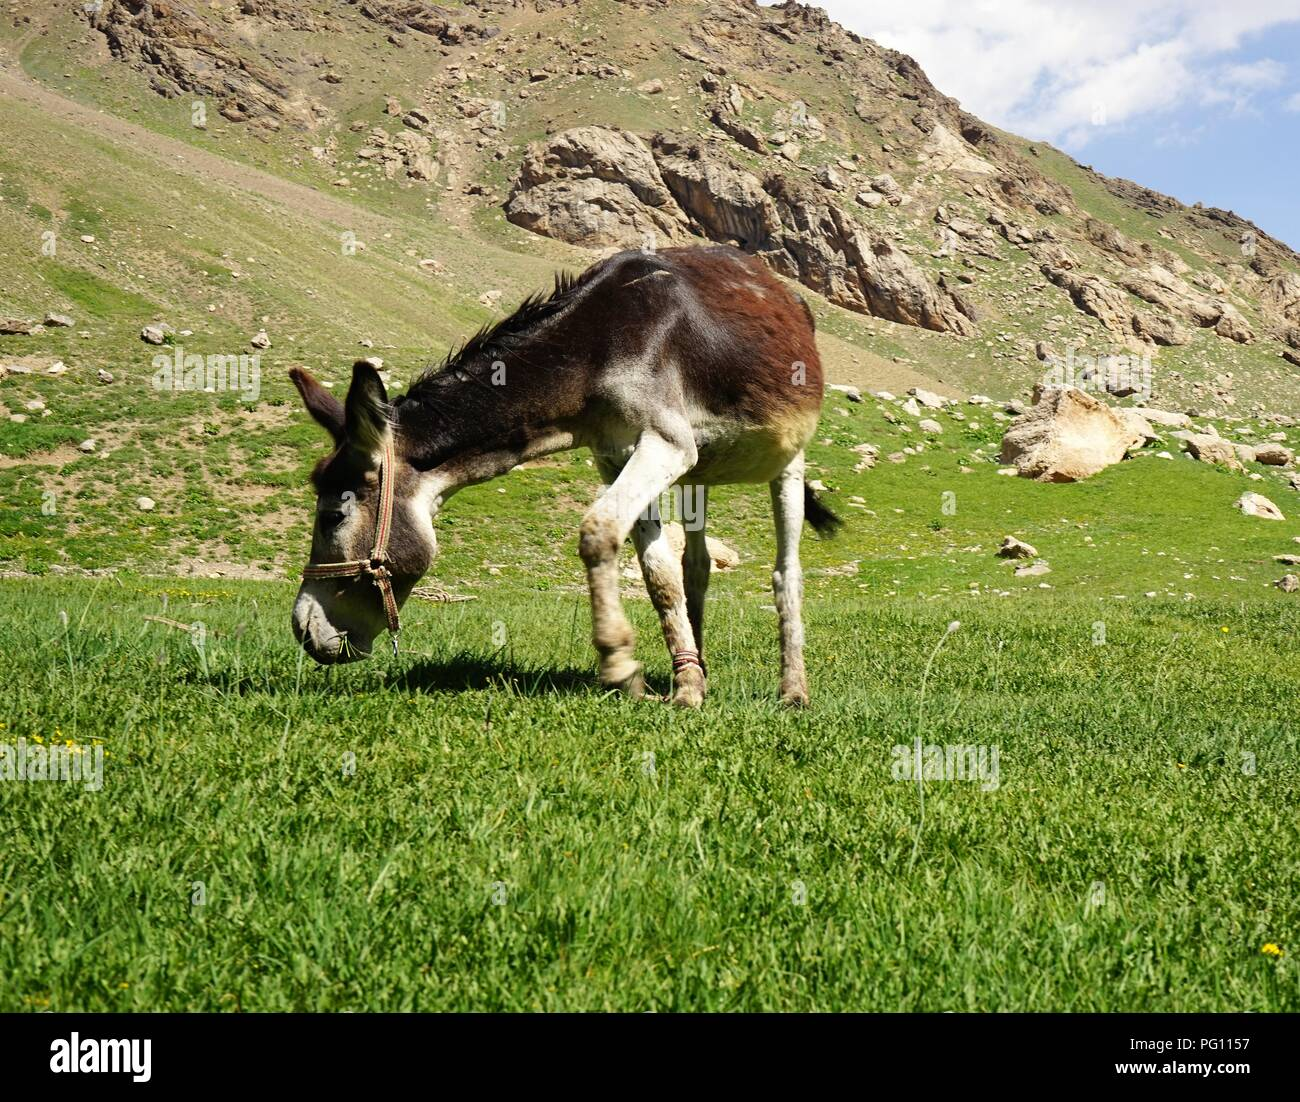 Donkey grazing in the mountain valley, Fann Mountains, Tajikistan - Stock Image